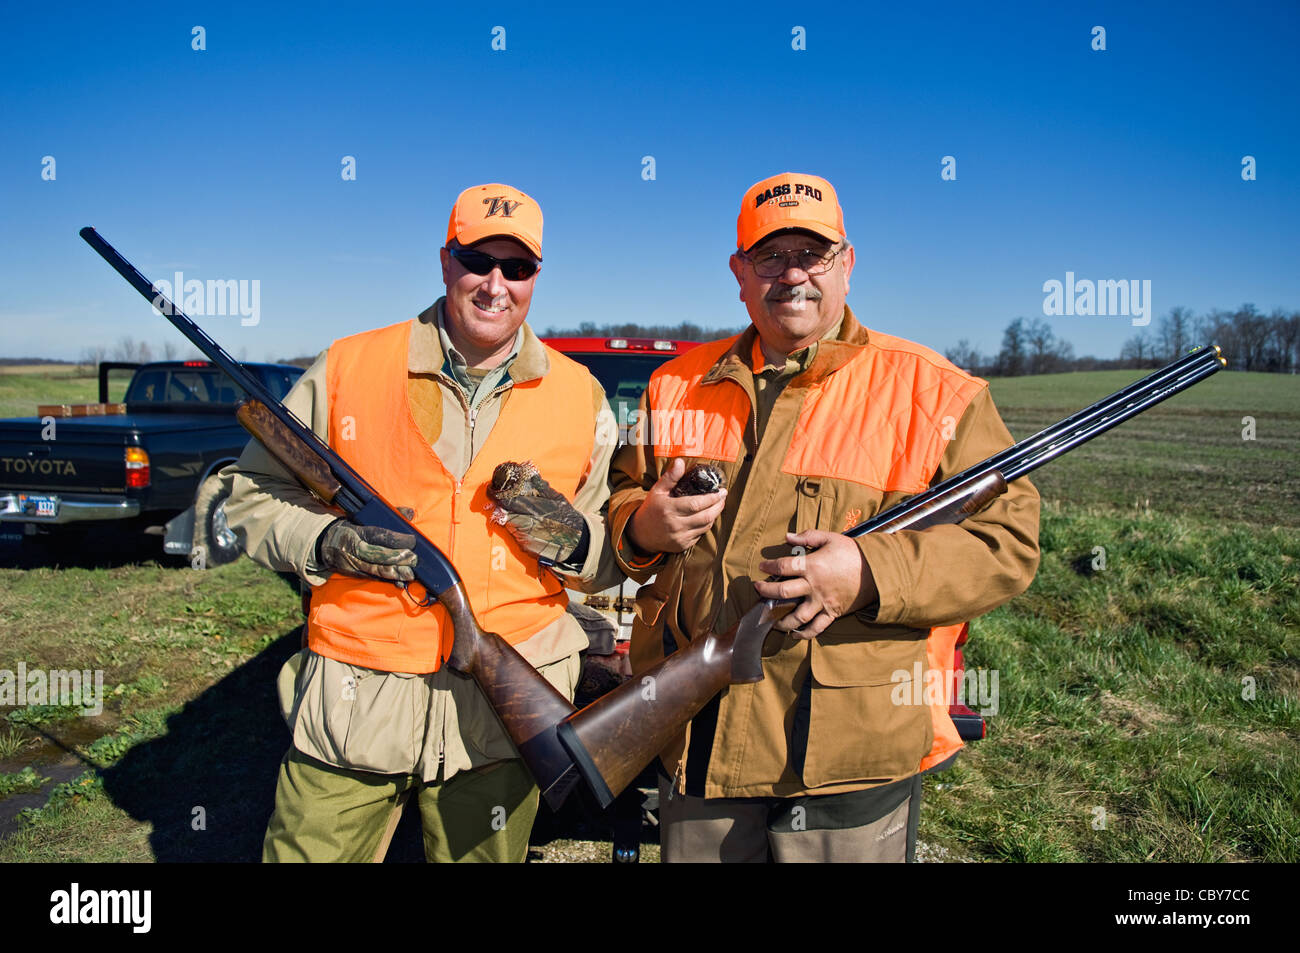 Two Upland Bird Hunters Posing with Shotguns and Bobwhite Quail - Stock Image